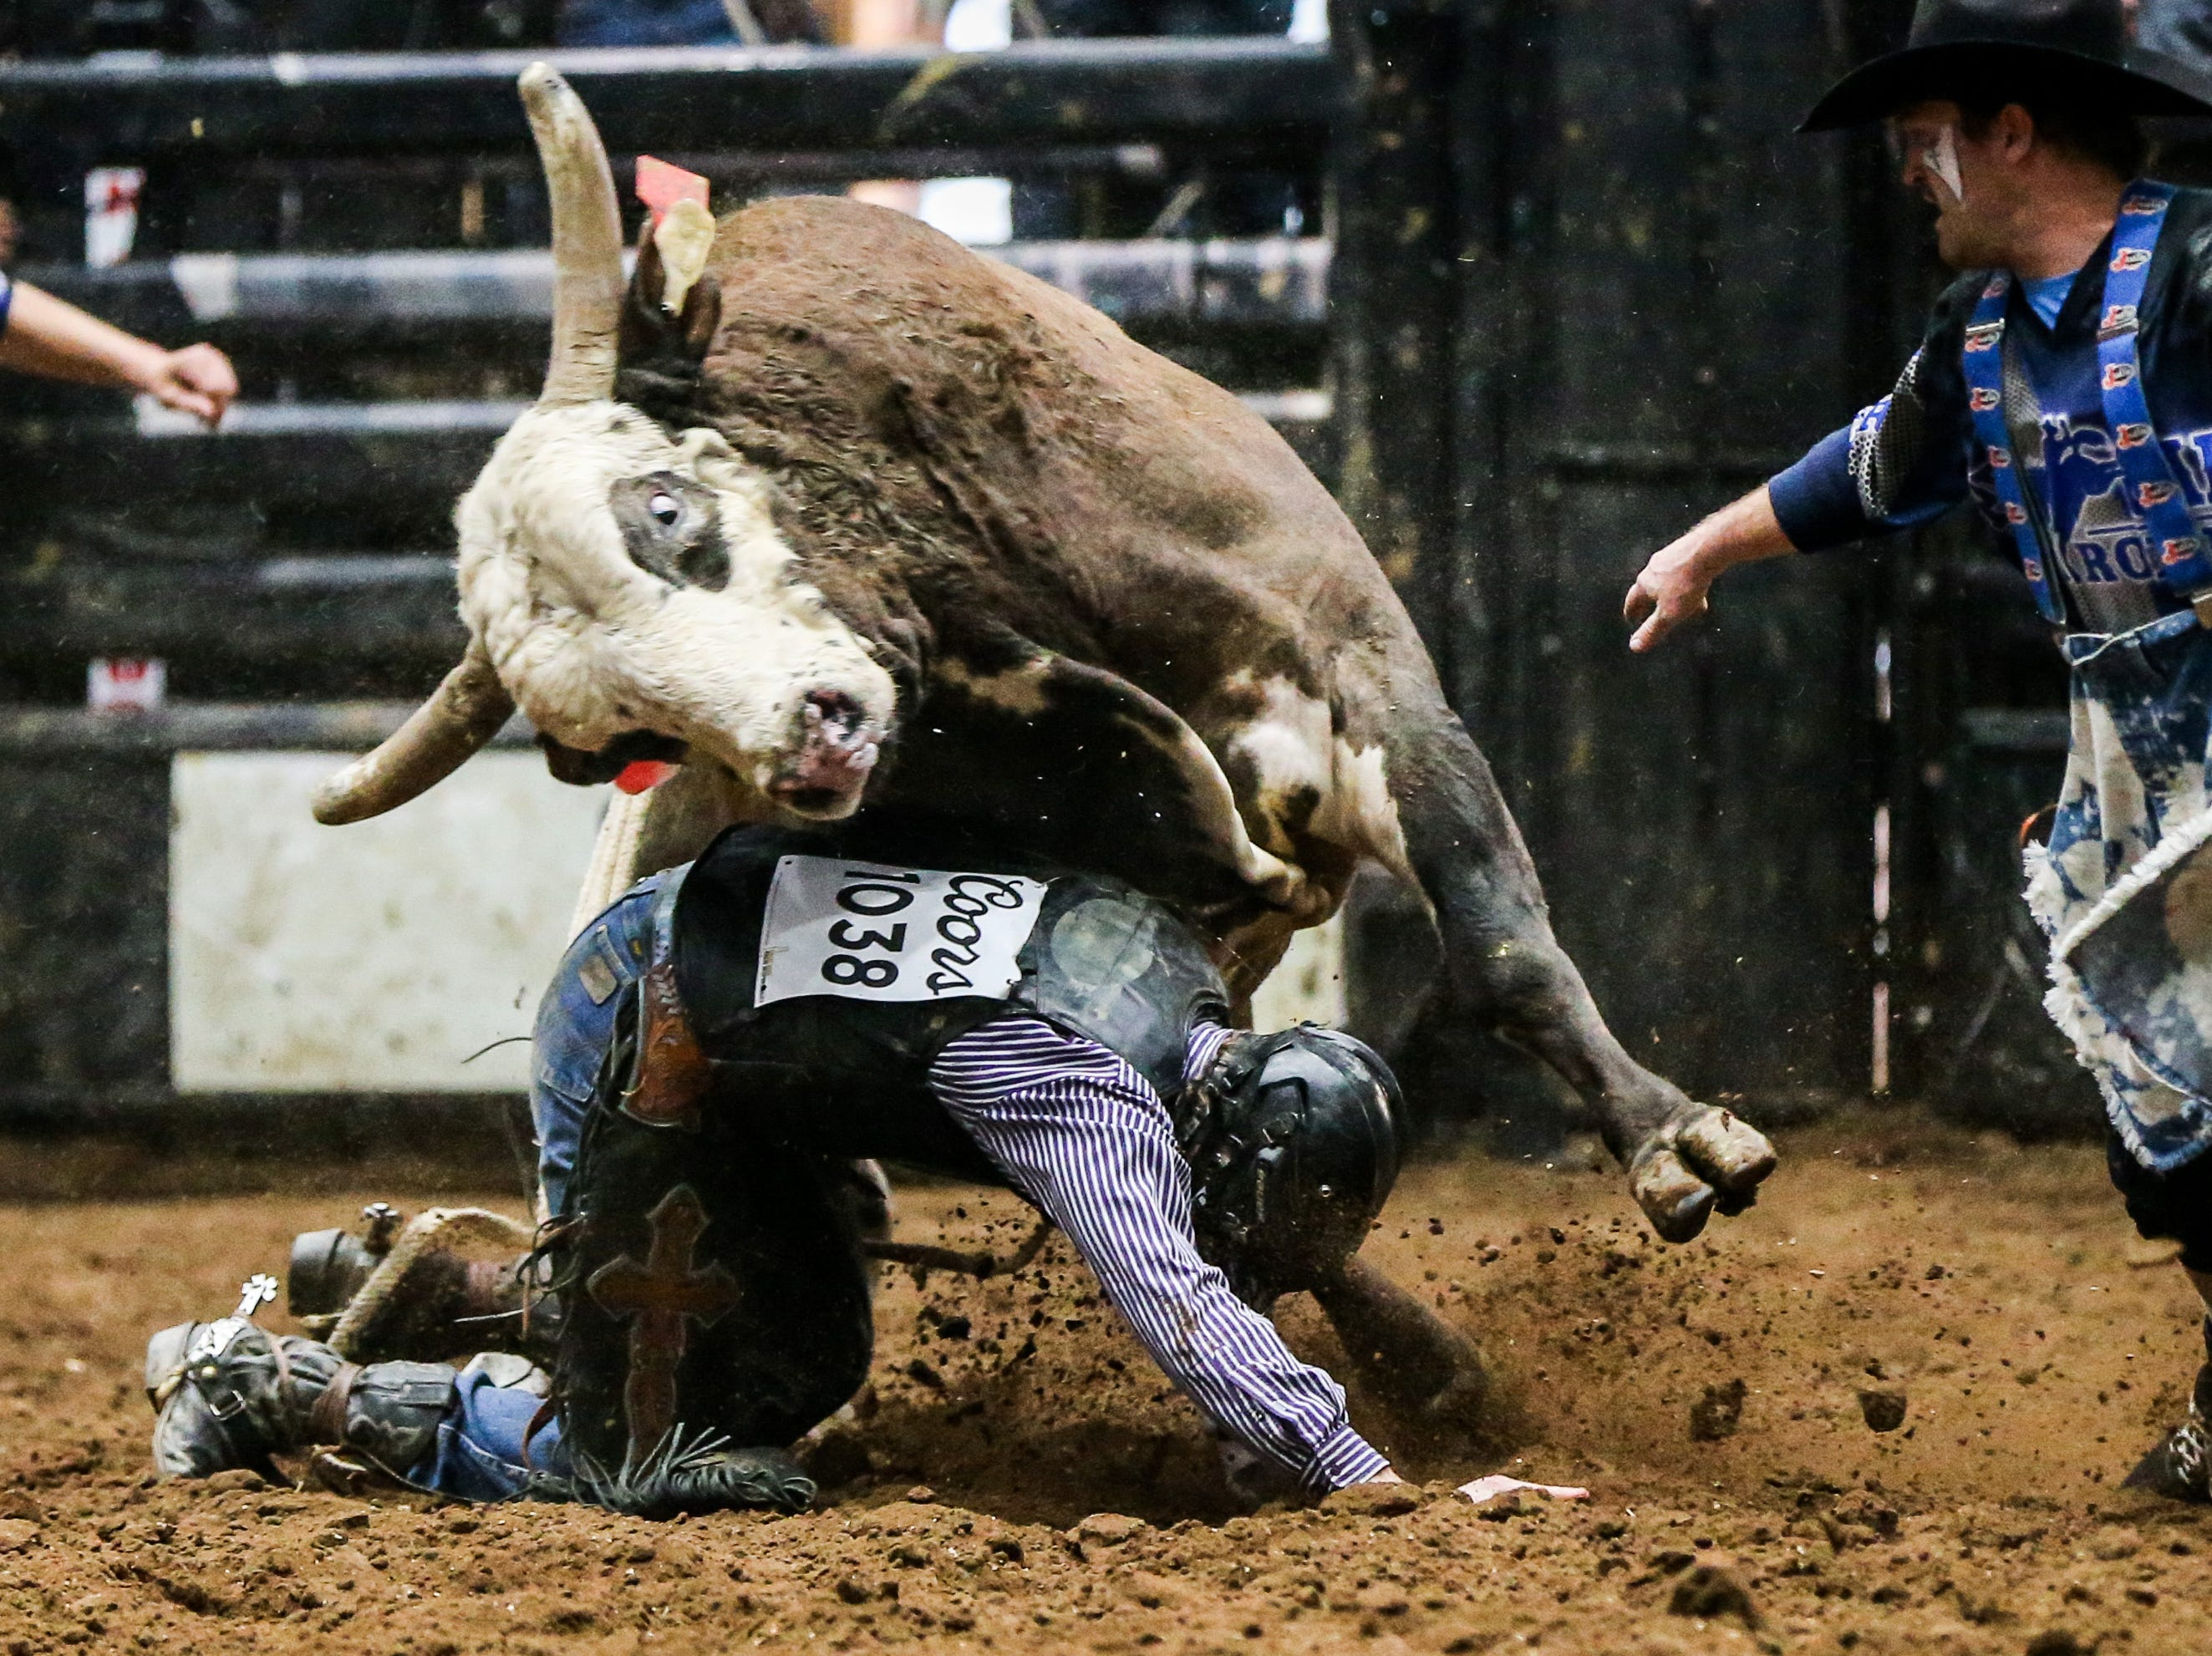 Colten Beaty is tackled by bull after his fall during the San Angelo Stock Show & Rodeo matinee show Sunday, Feb. 10, 2019, at Foster Communications Coliseum.